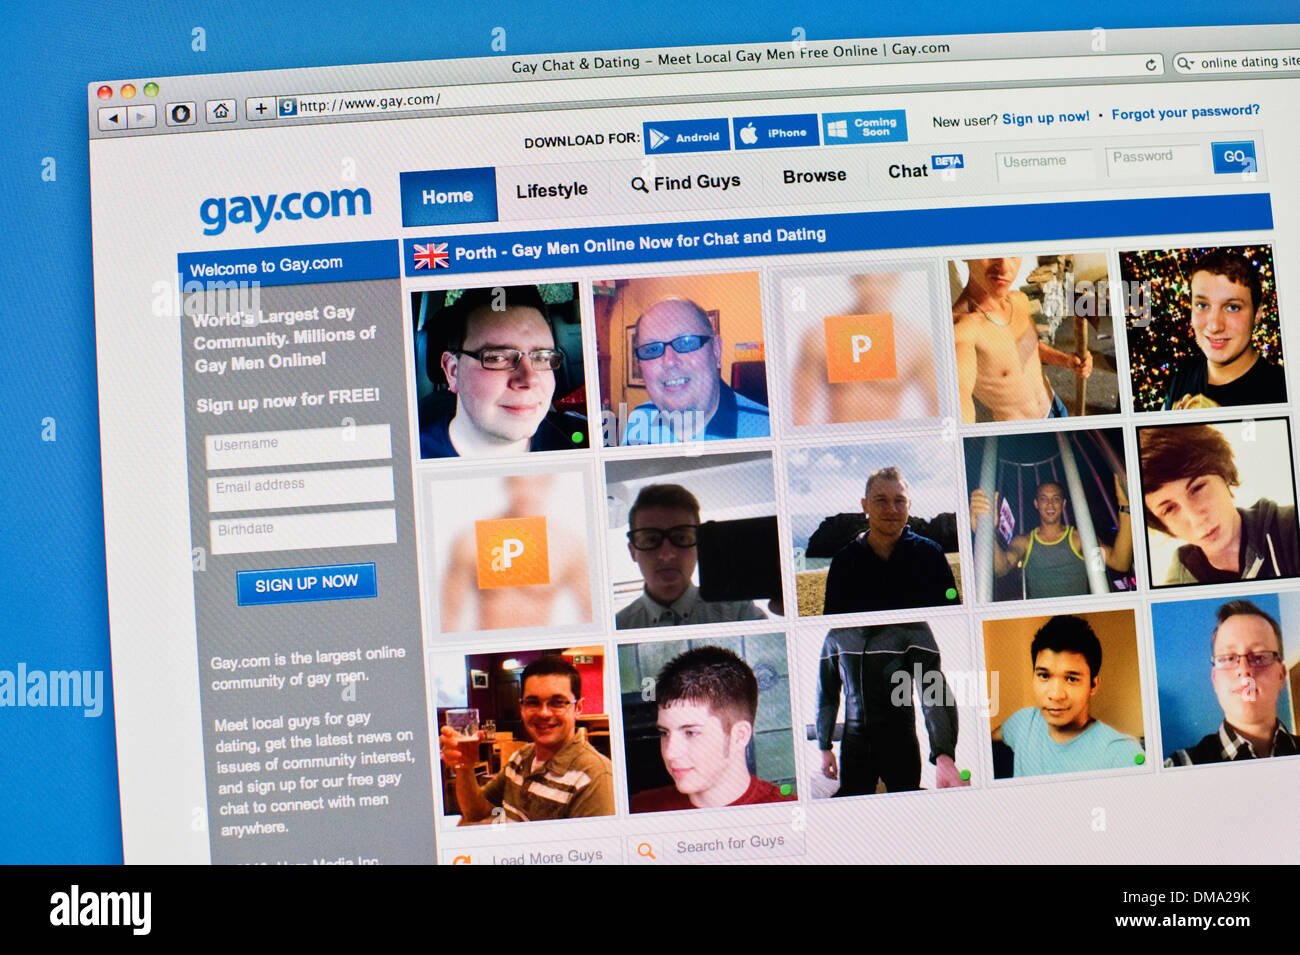 What are some free gay dating sites